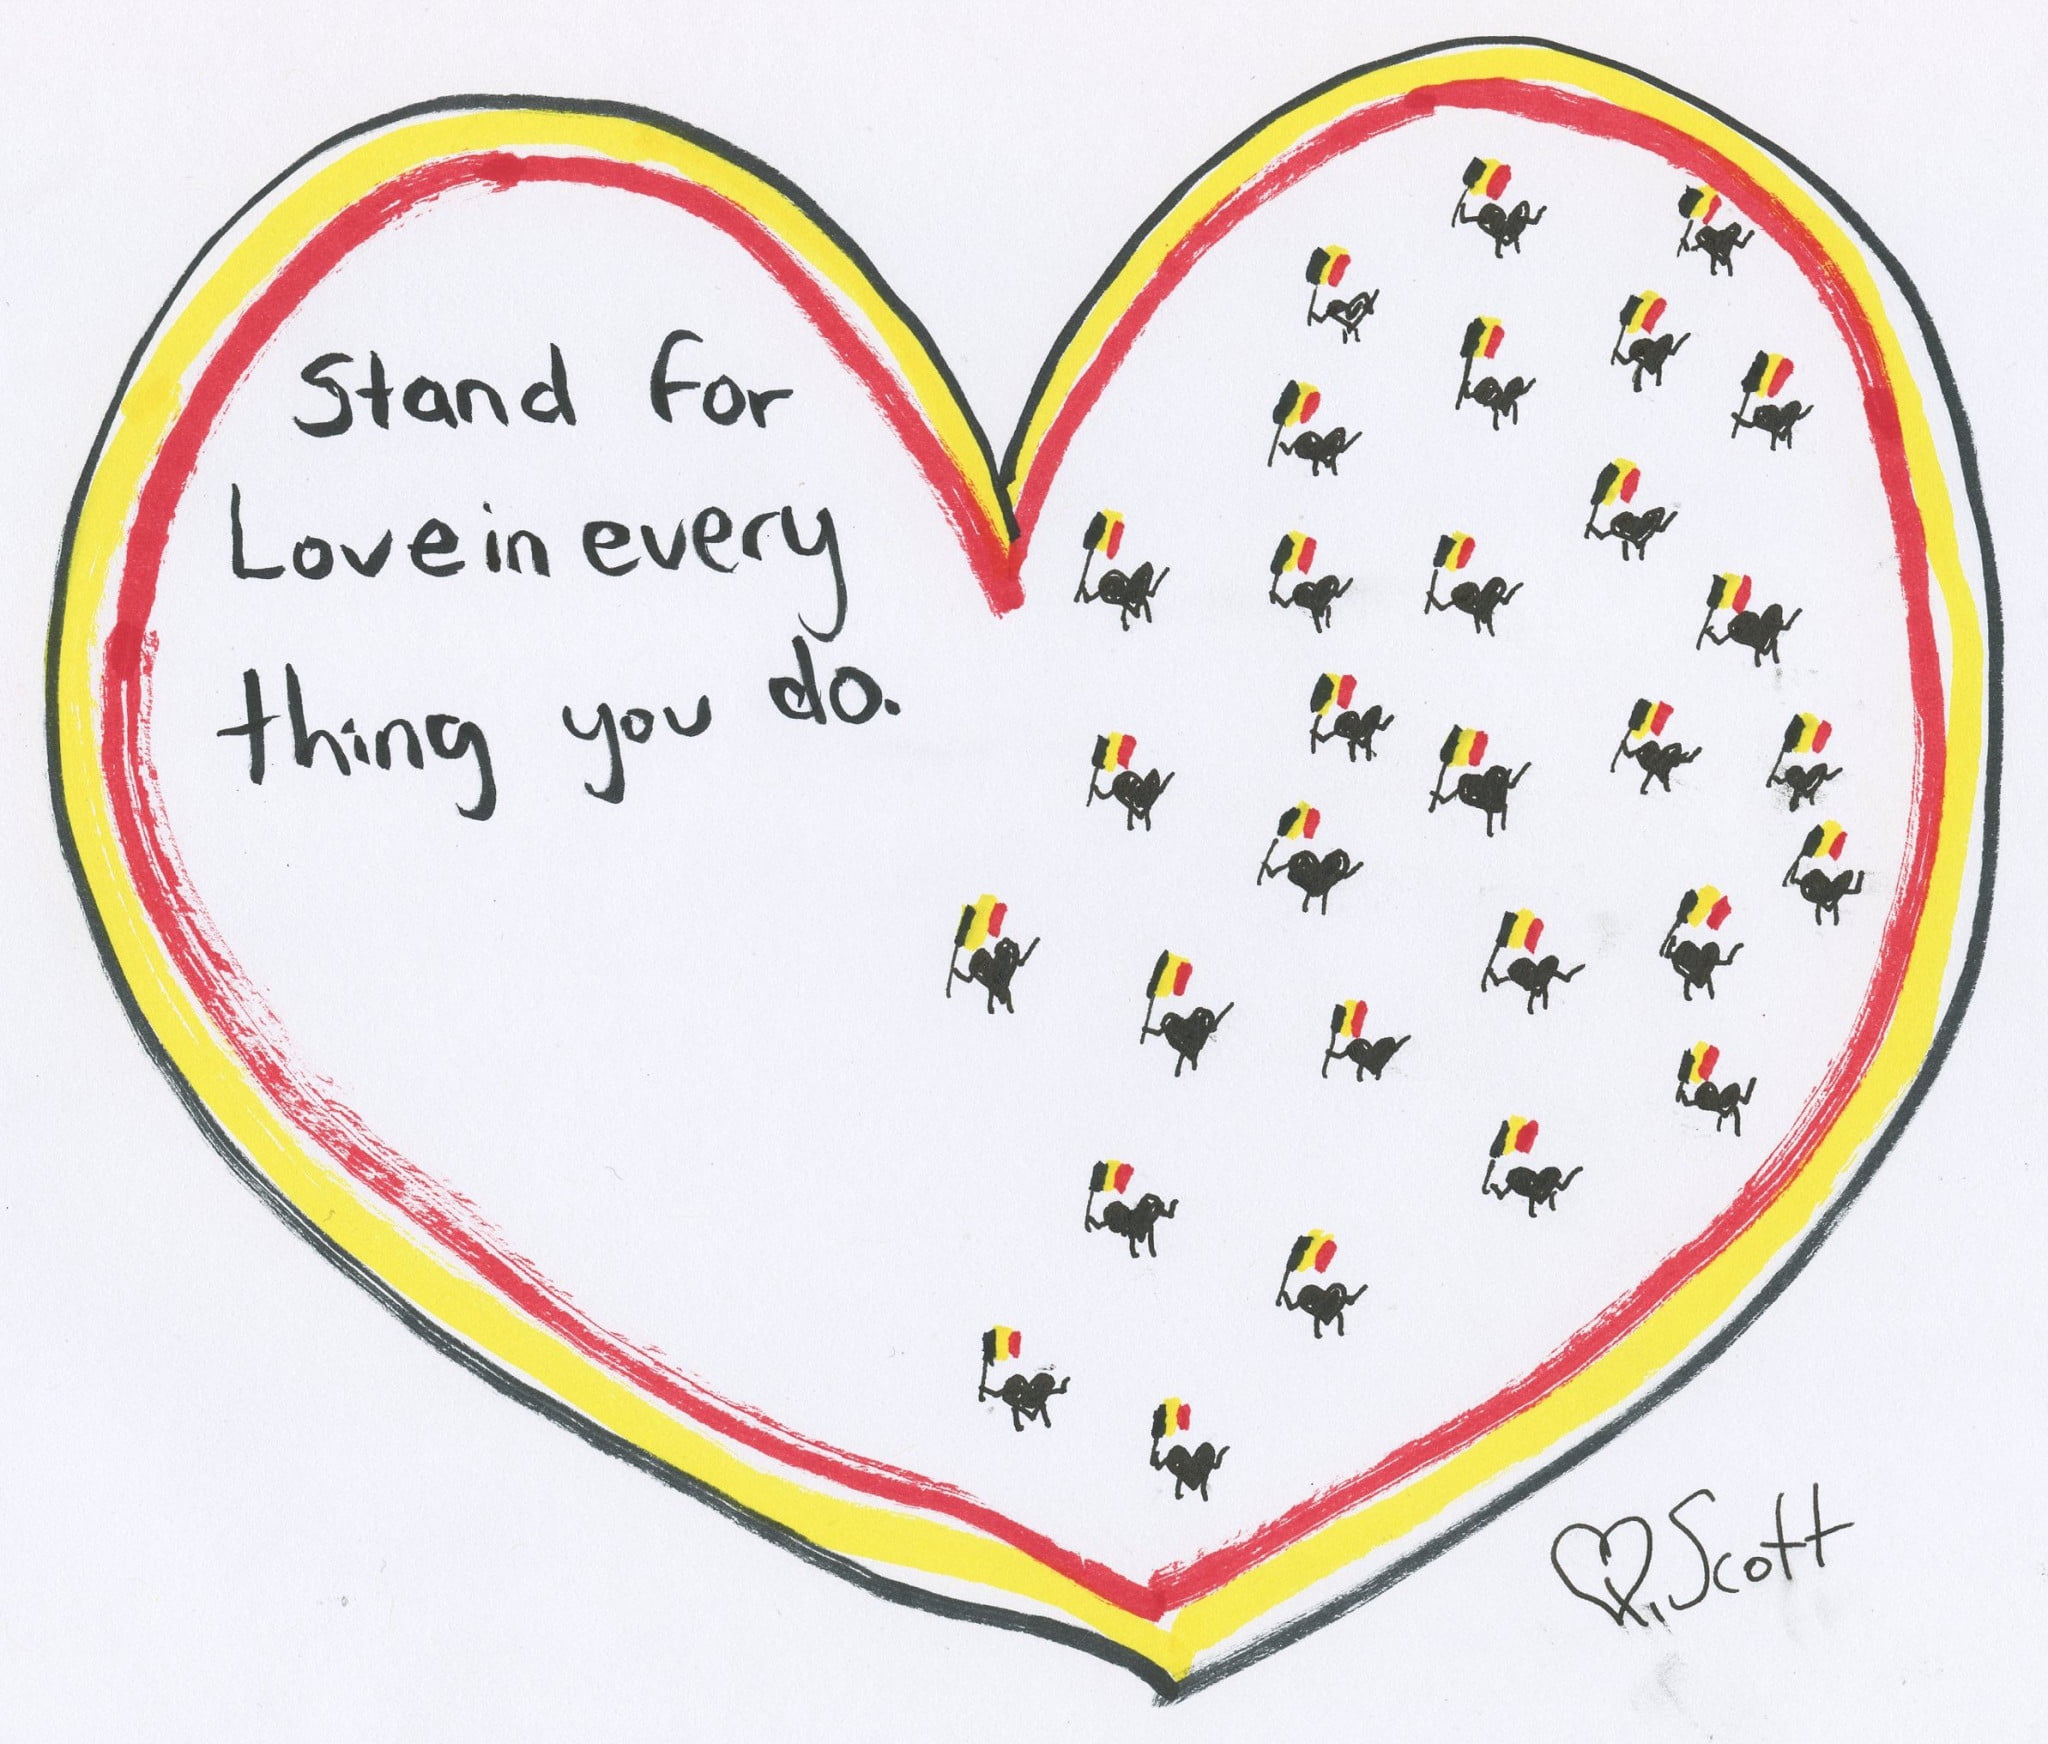 Stand for love in every thing you do.